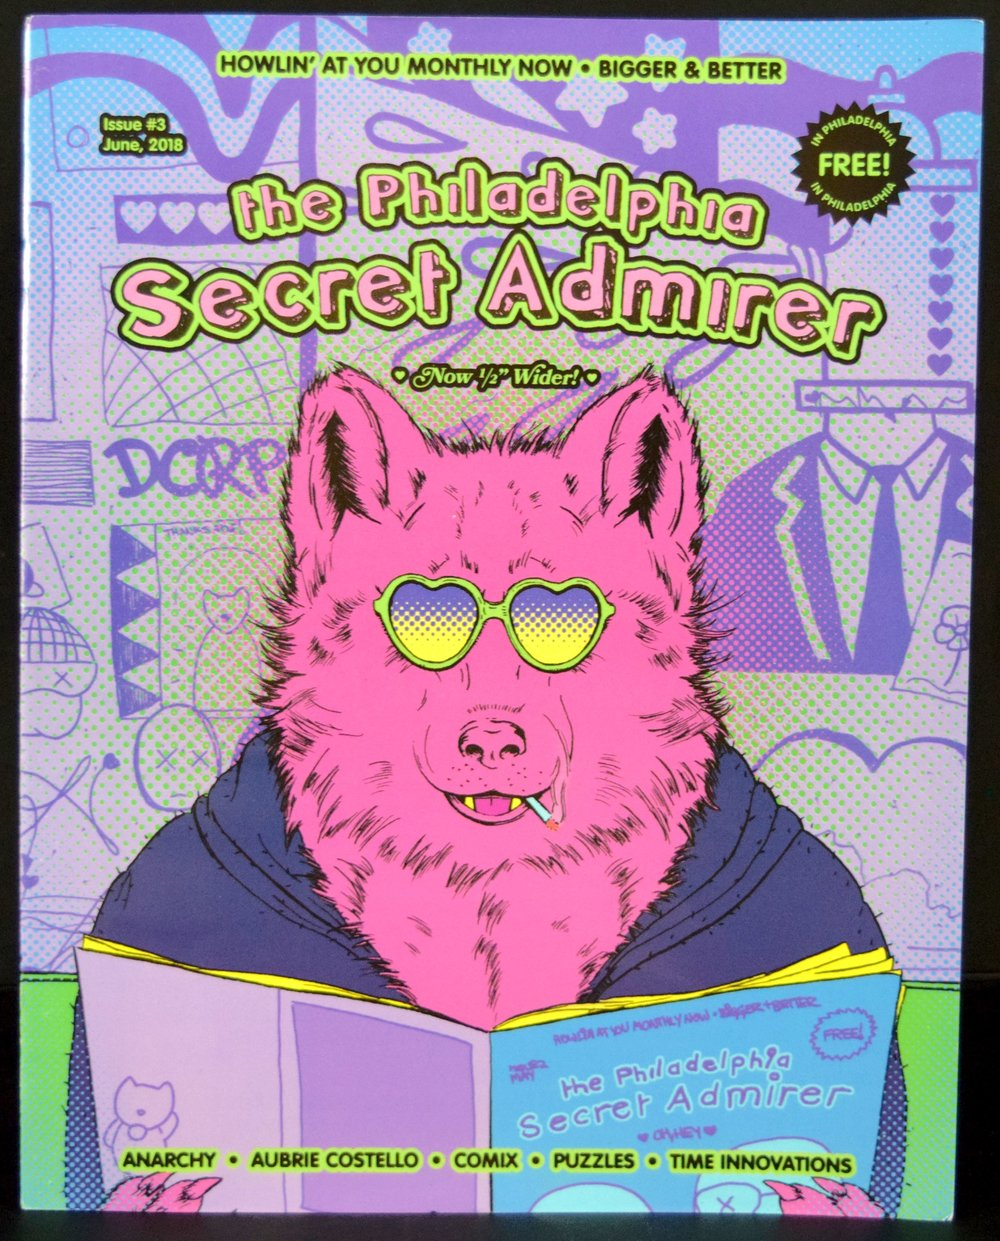 The Philadelphia Secret Admirer #3, cover by Rachel Pfeffer .